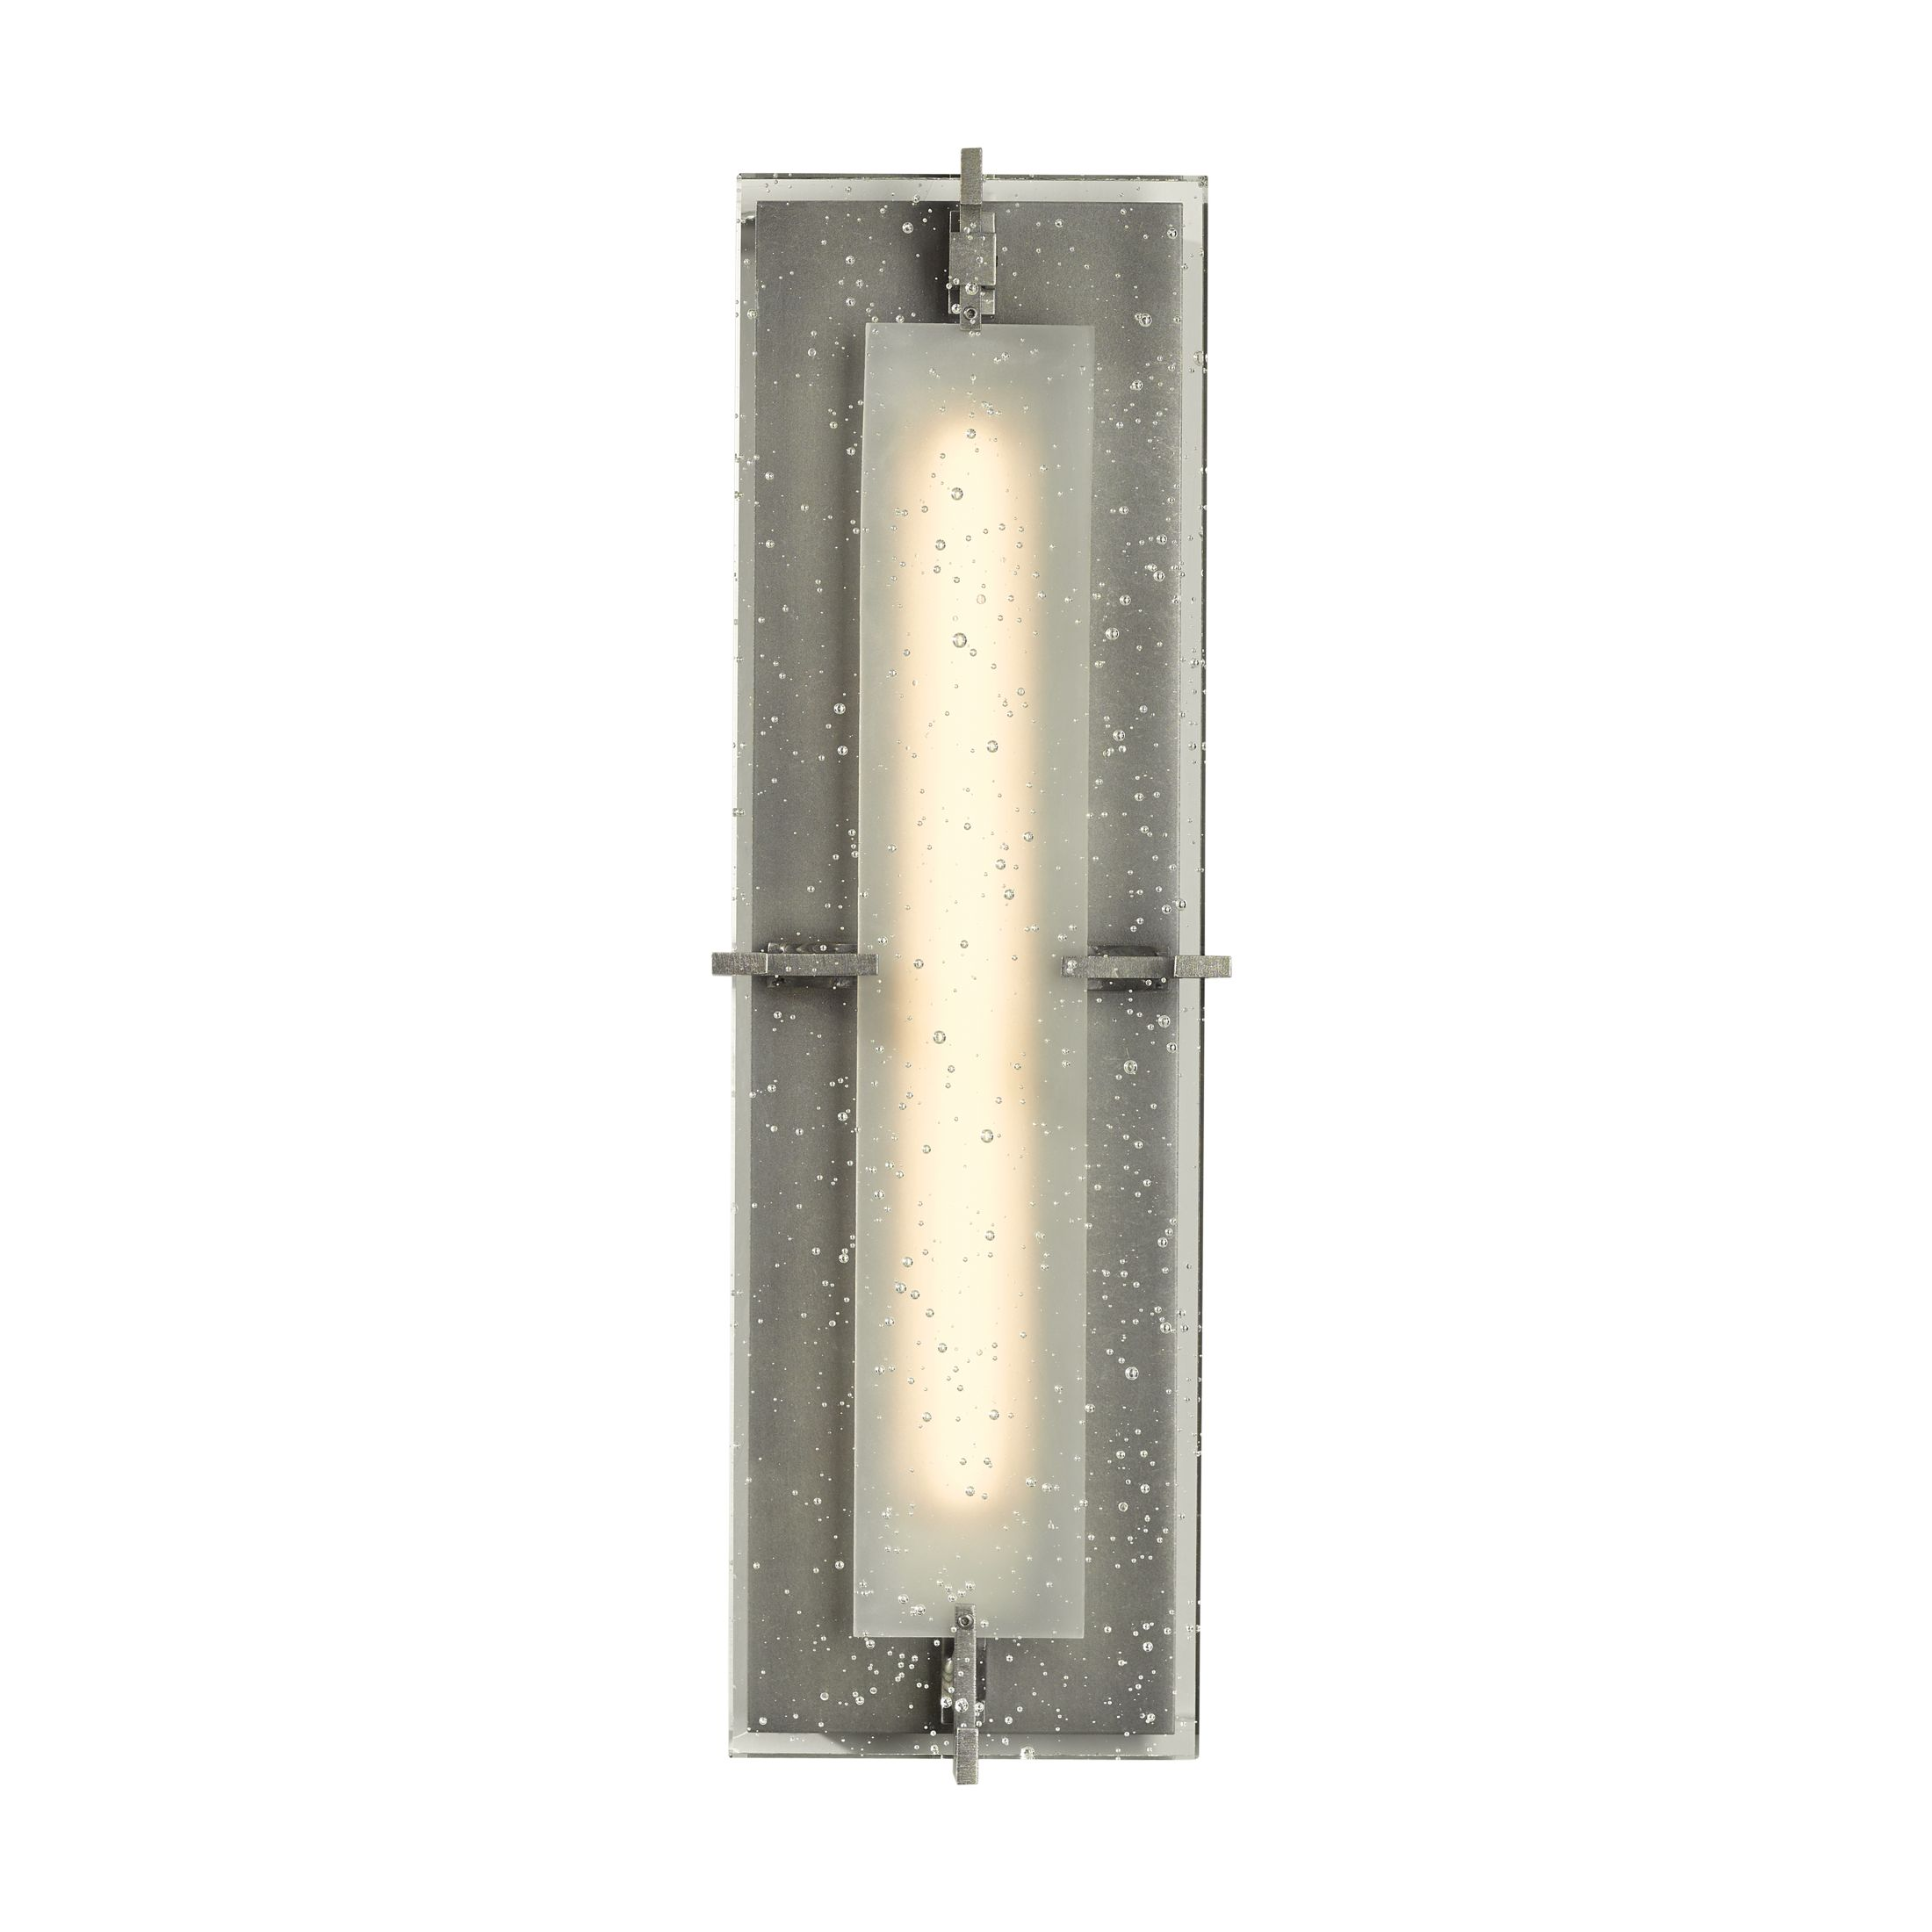 Thumbnail for Ethos LED Outdoor Sconce